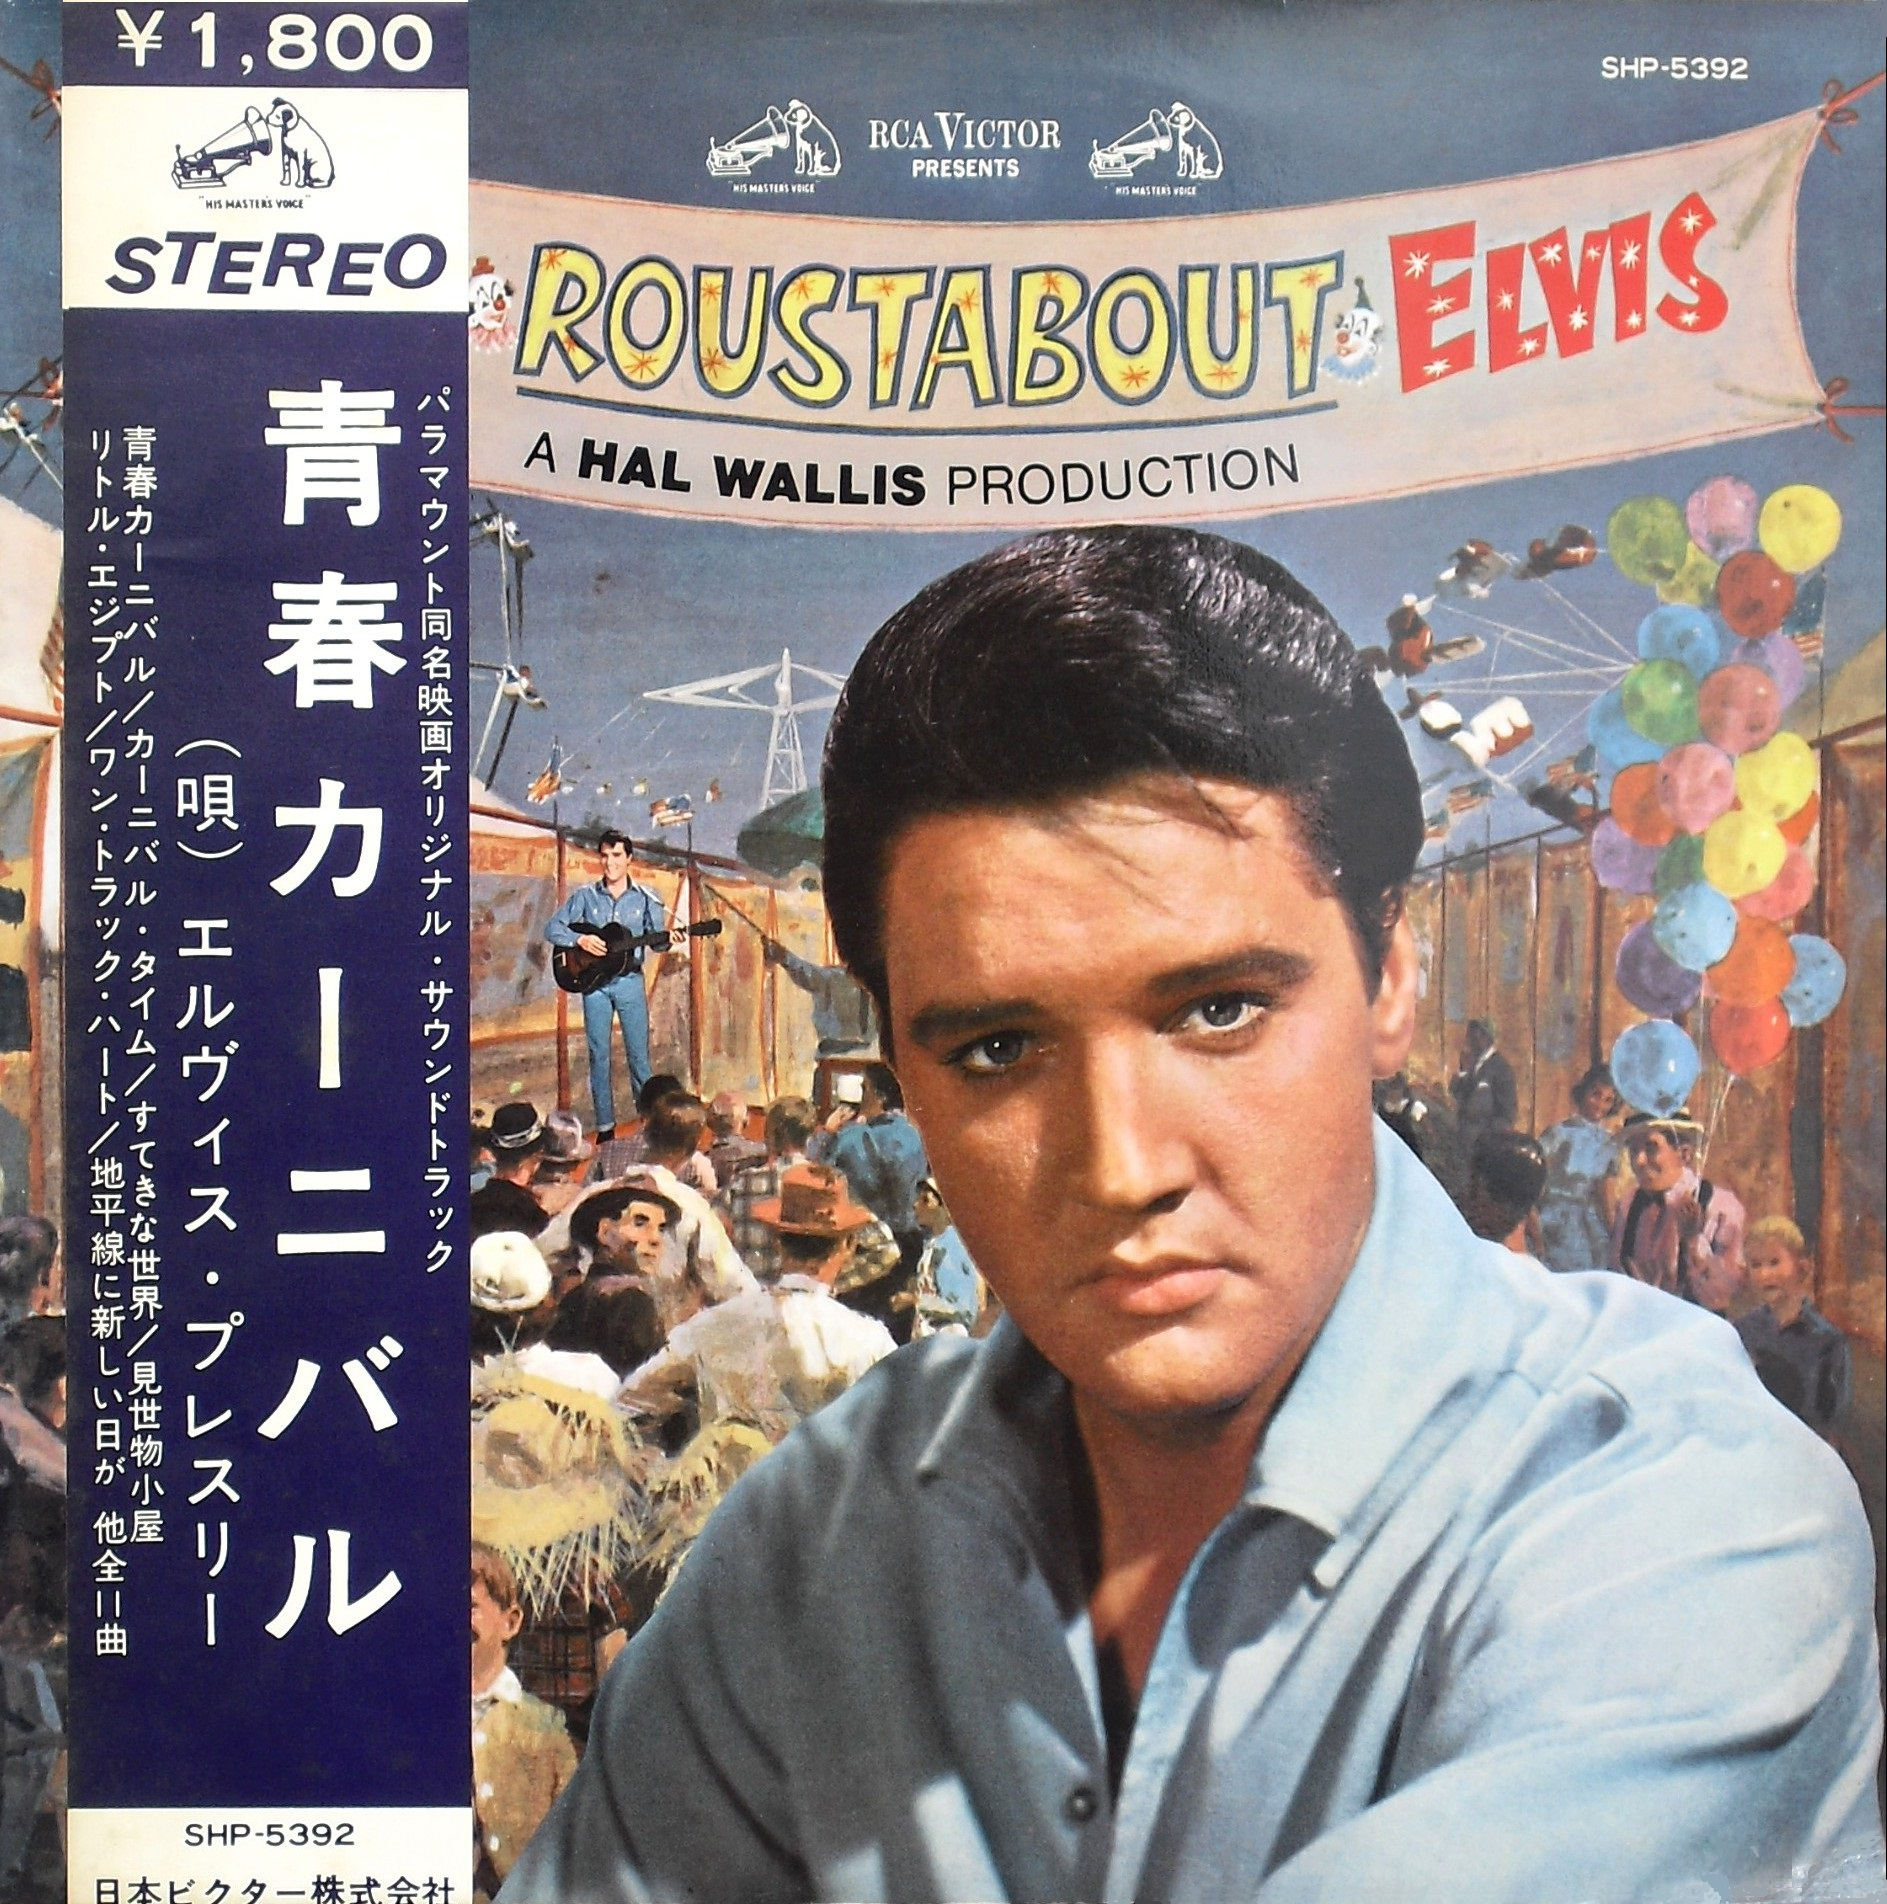 ROUSTABOUT 013zxb8